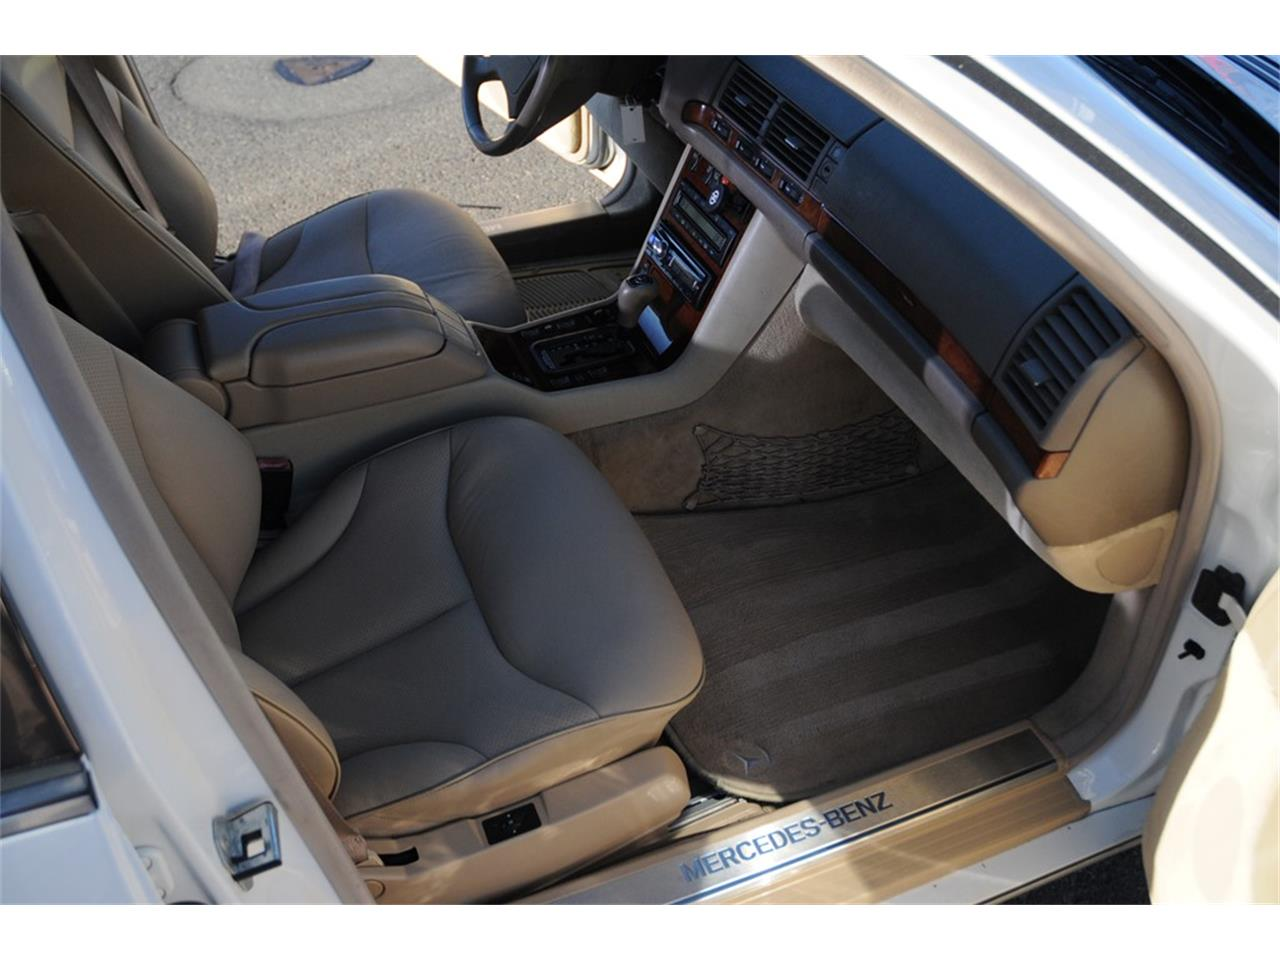 Large Picture of 1999 Mercedes-Benz S320 located in Costa Mesa California - $3,990.00 - OUD9